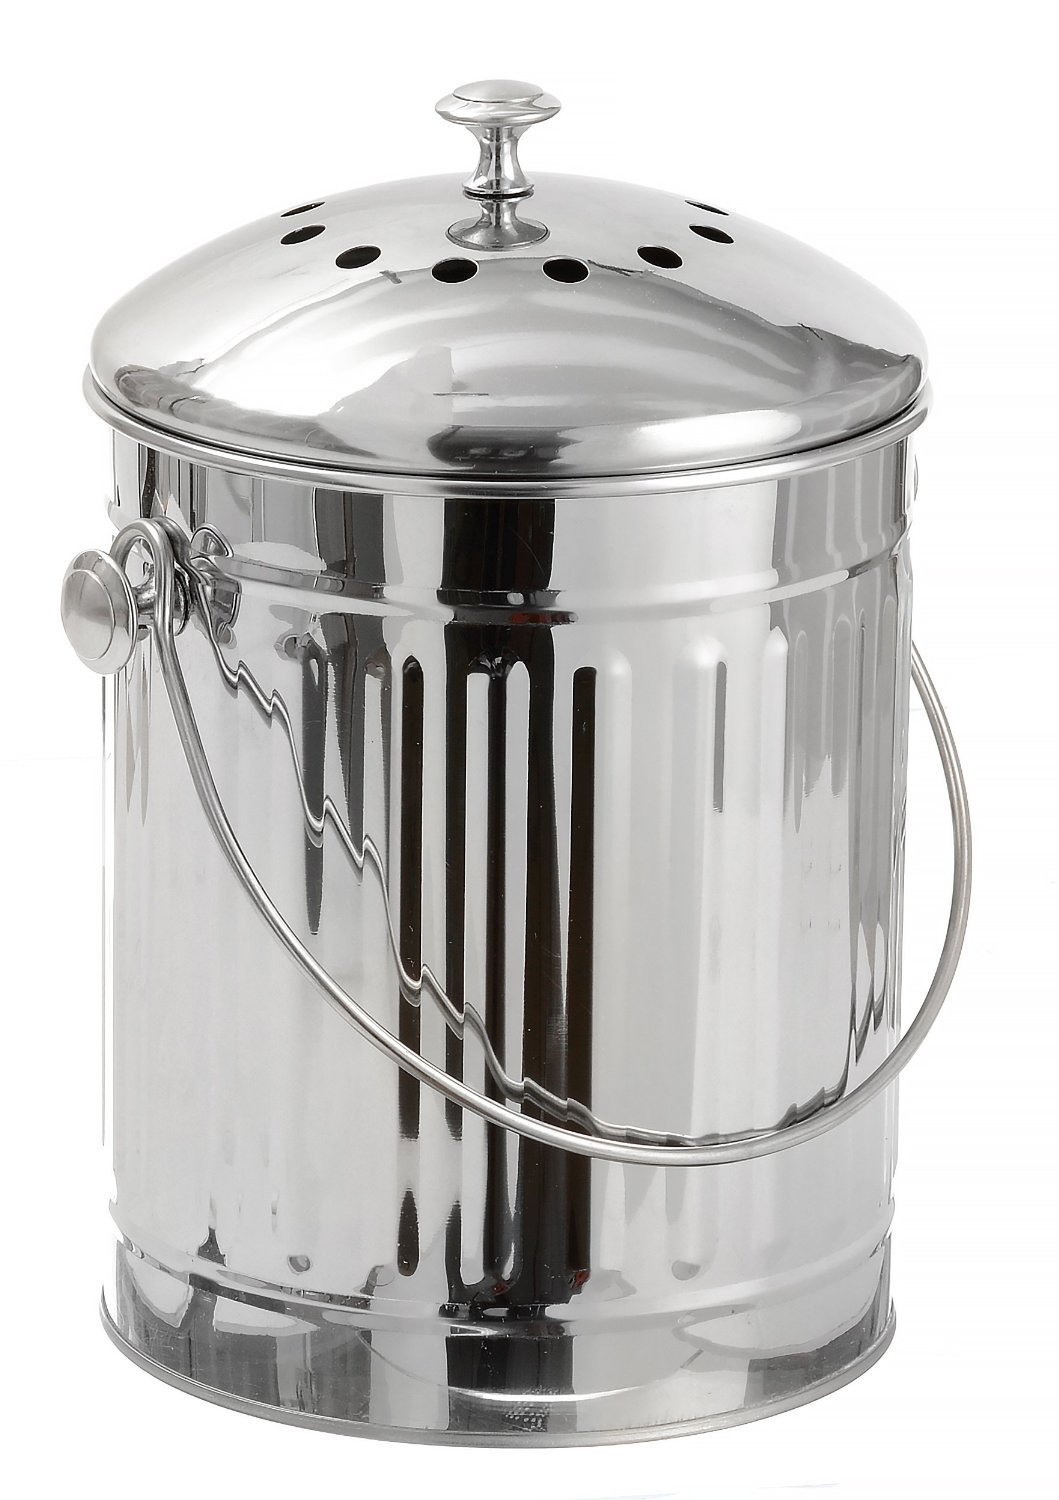 Compost Bin 1 Gallon Stainless Steel by Sagler